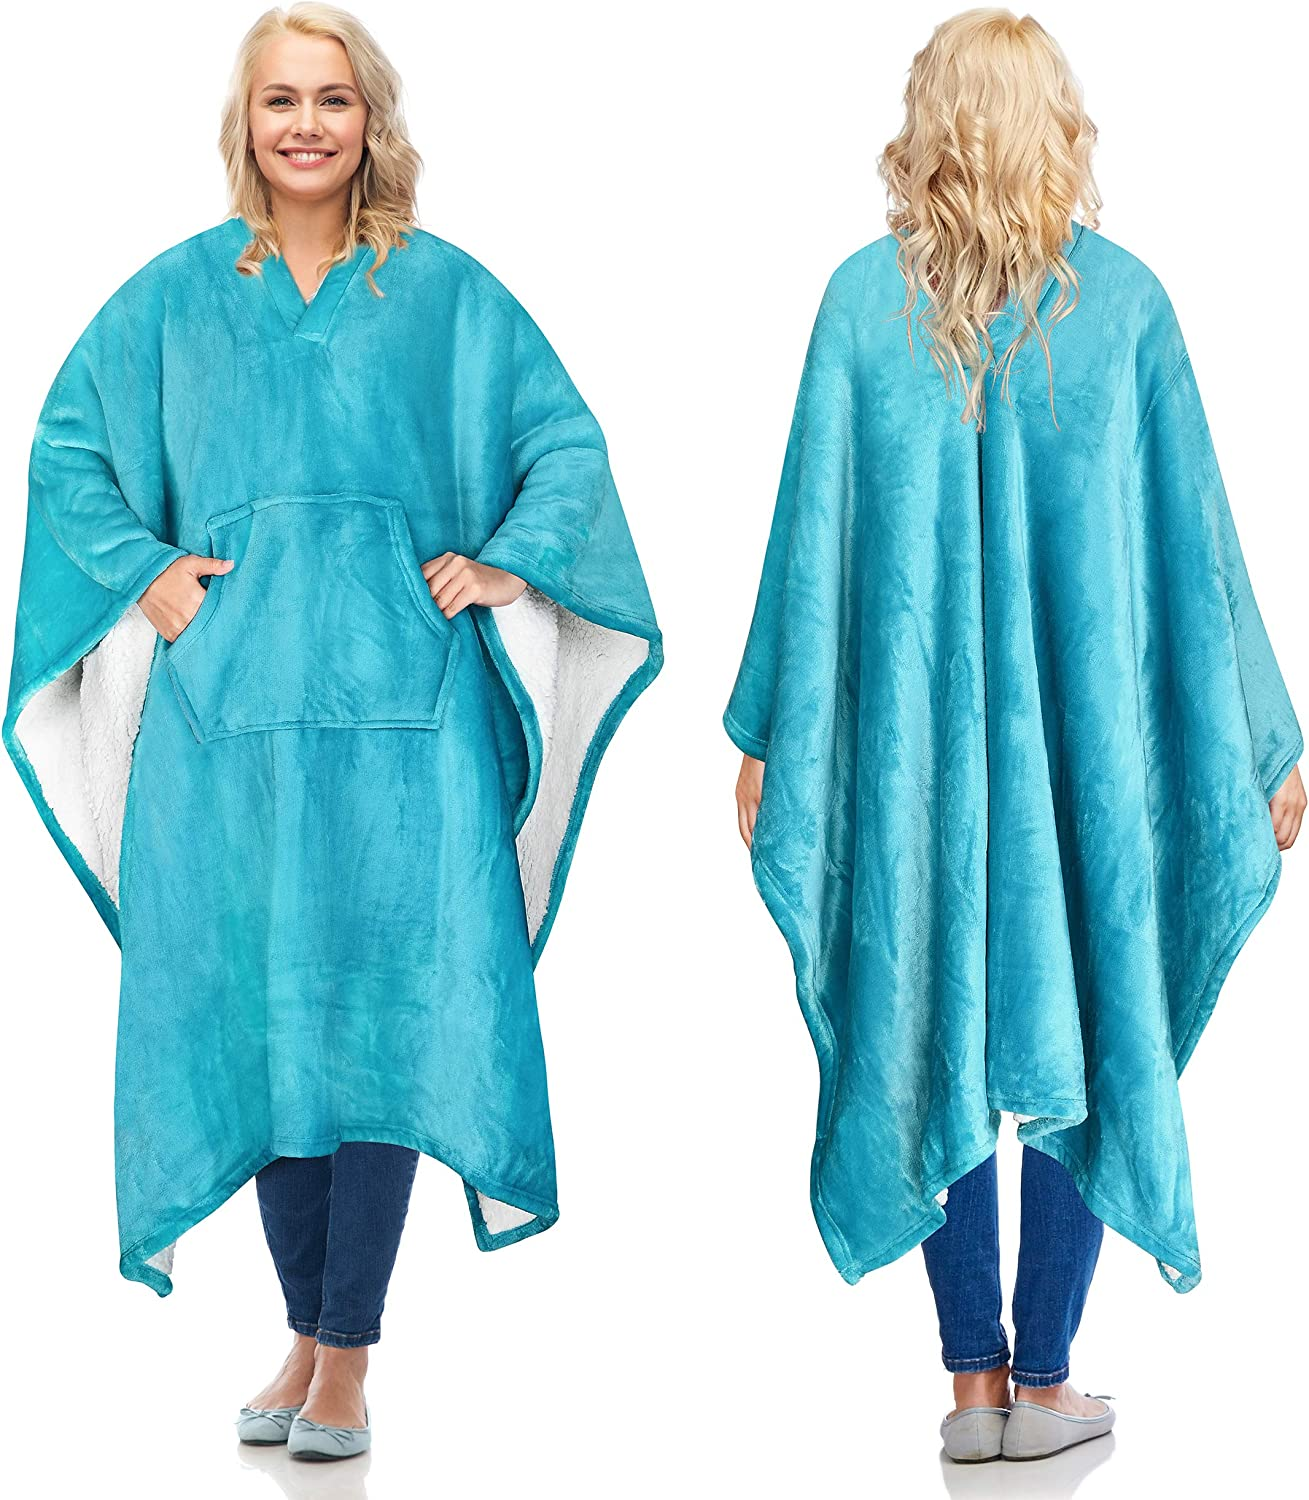 Catalonia Sherpa Wearable Blanket Poncho for Adult Women Men,Wrap Blanket Cape with Pocket,Warm,Soft,Cozy,Snuggly,Comfort Gift,No Sleeves,Aqua